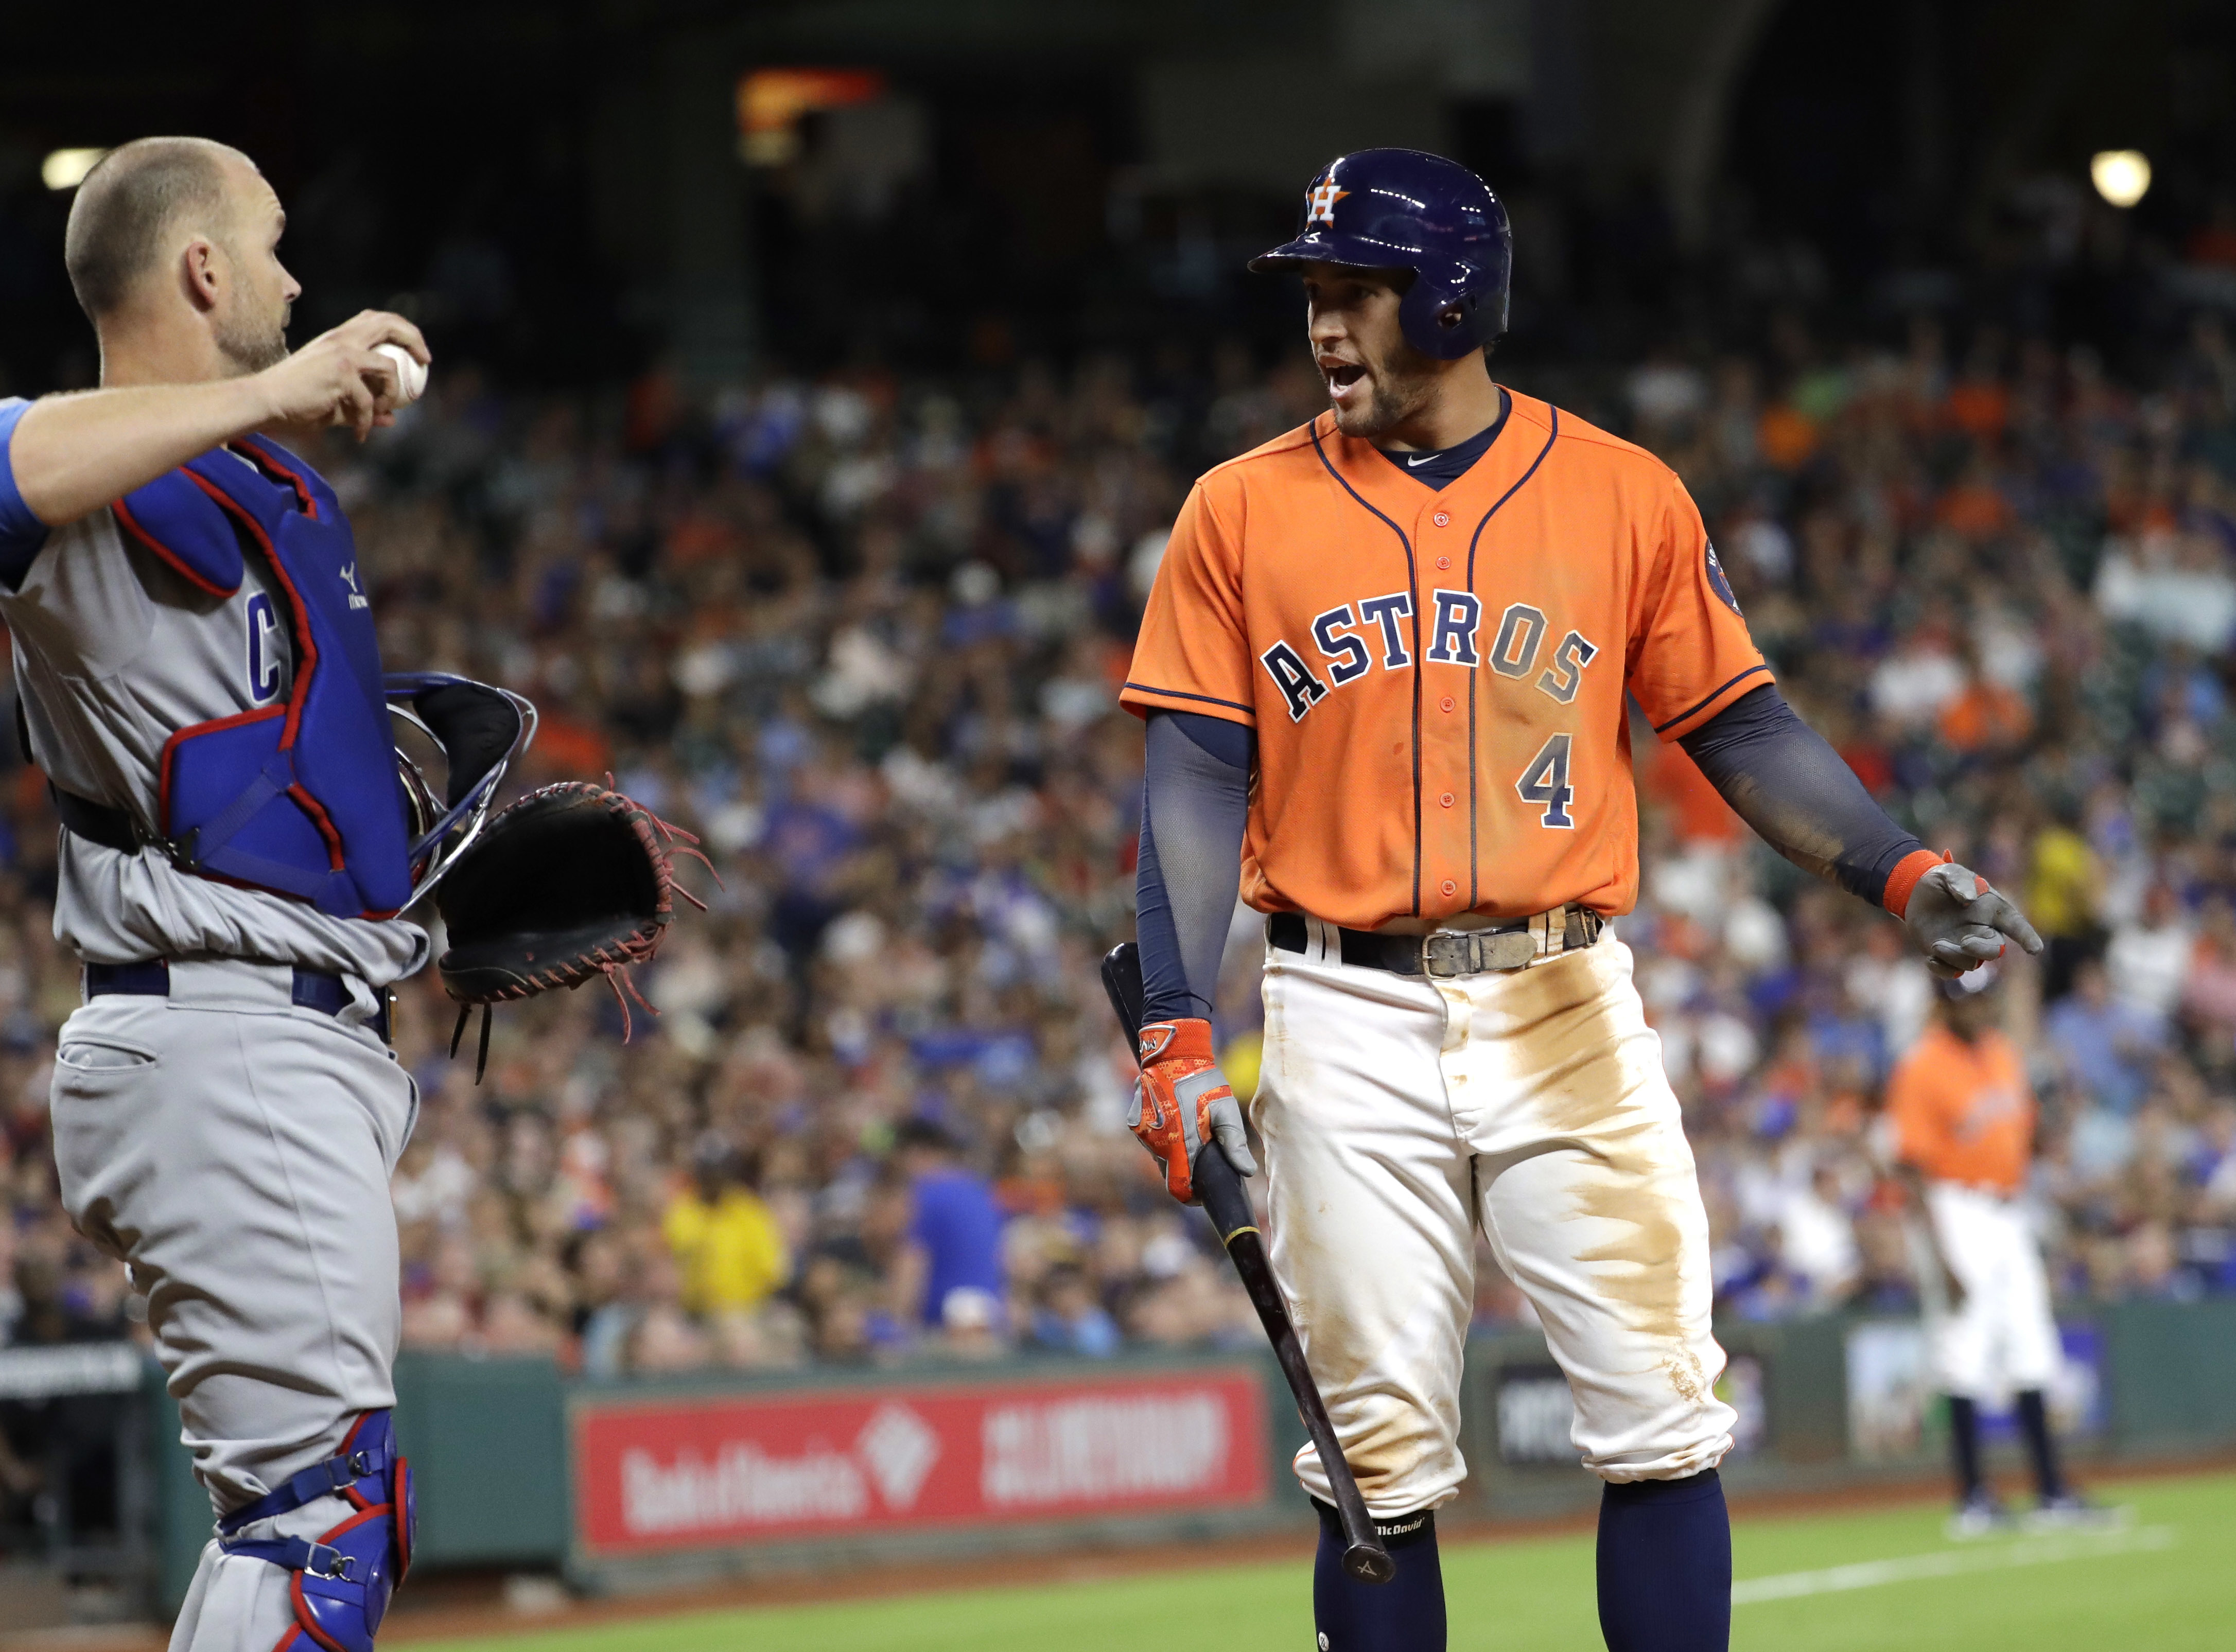 Houston Astros' George Springer (4) reacts after striking out as Chicago Cubs catcher David Ross throws the ball back to starting pitcher Jon Lester during the sixth inning of a baseball game Friday, Sept. 9, 2016, in Houston. (AP Photo/David J. Phillip)